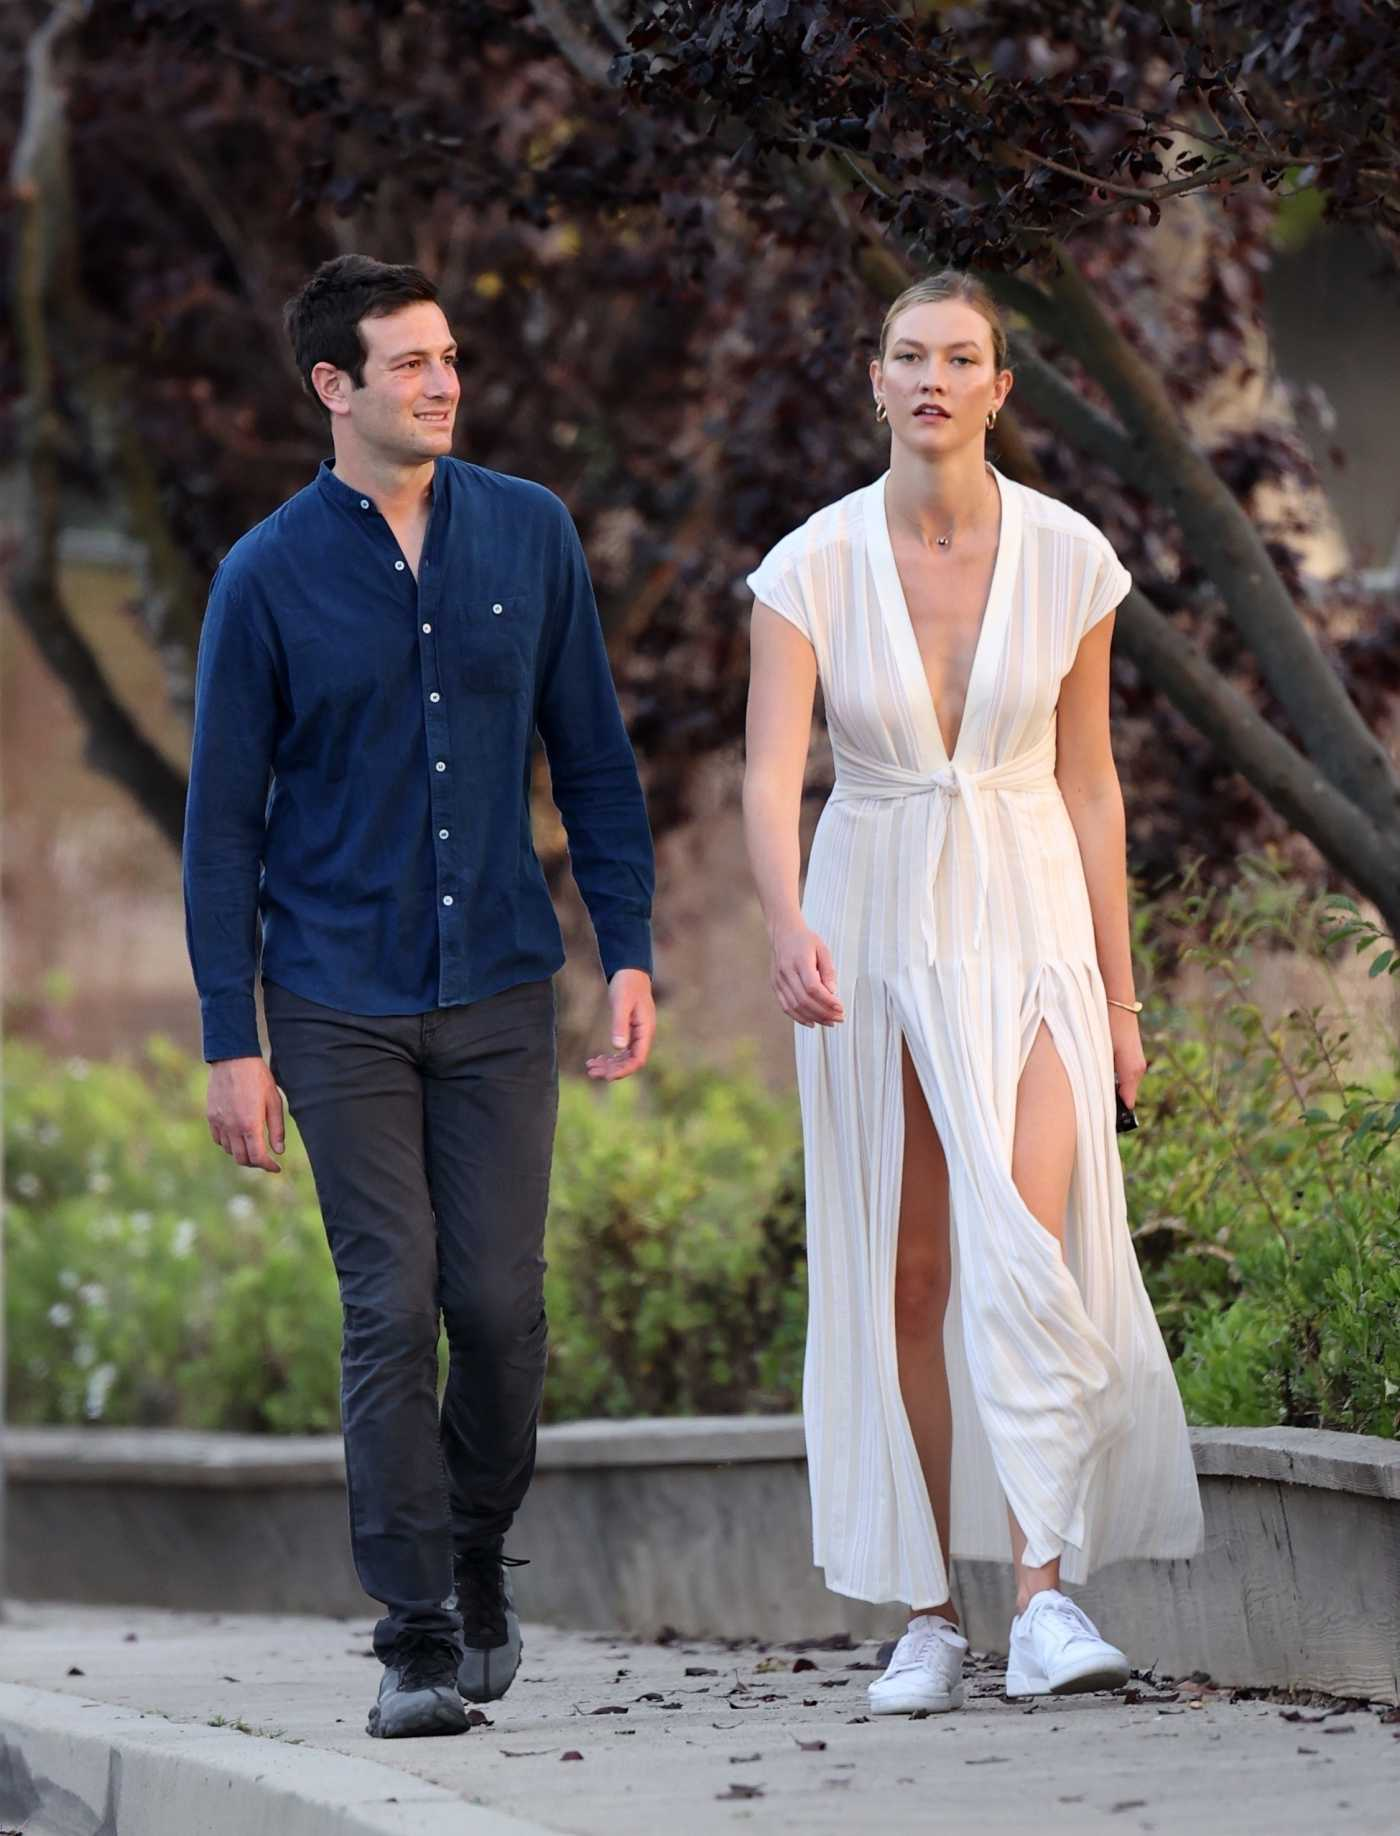 Karlie Kloss in a White Dress Was Seen Out with Her Husband Joshua Kushner in Los Angeles 07/11/2020